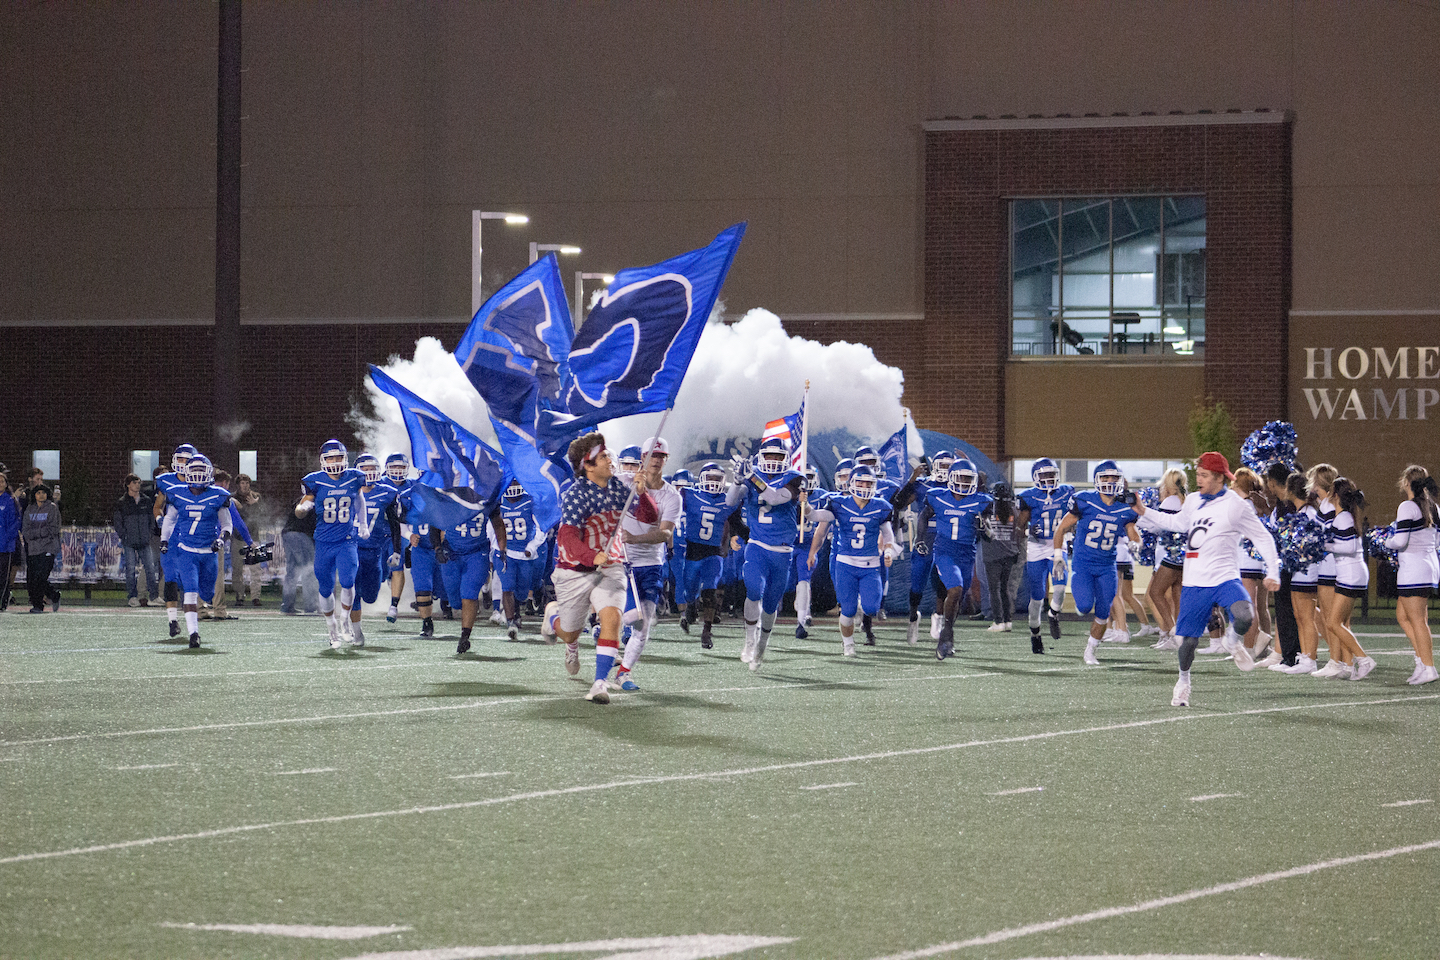 Wampus Cats take the field on Homecoming against Northside.